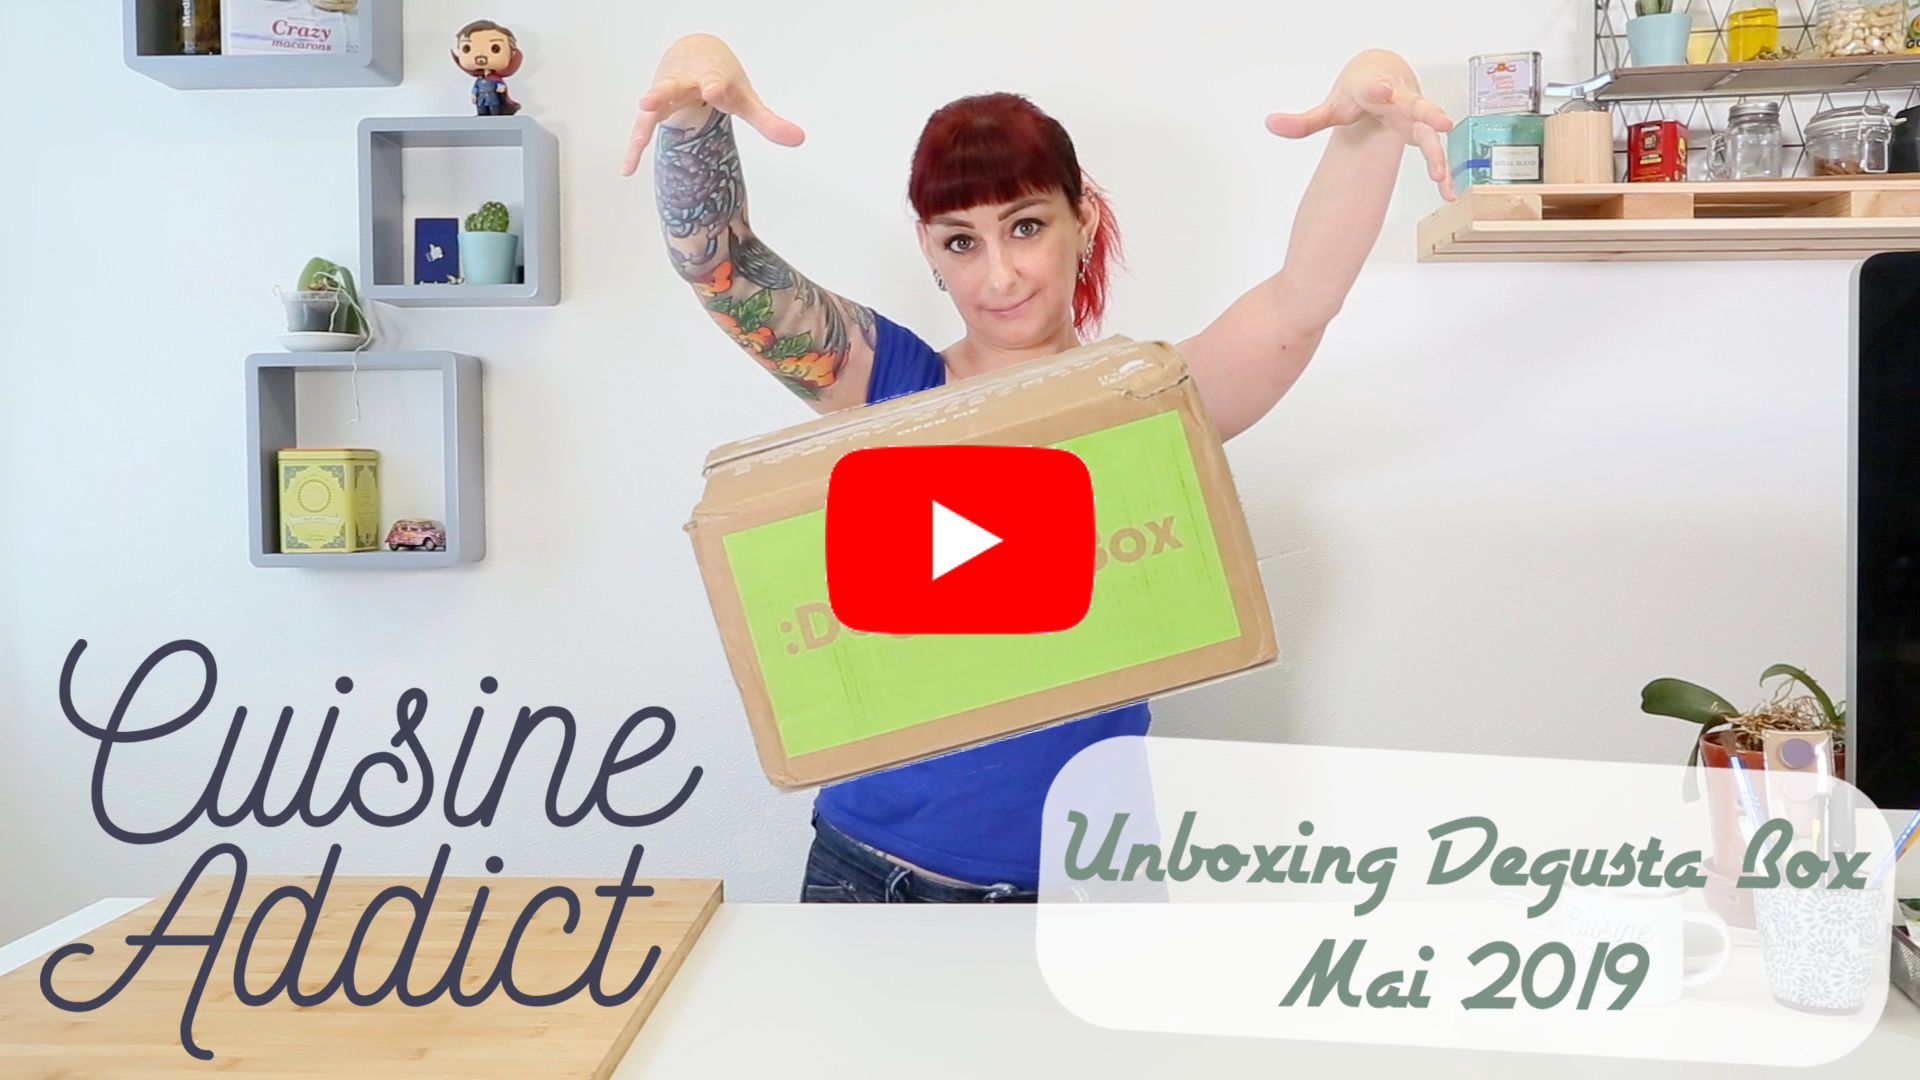 Unboxing Degusta Box Mai